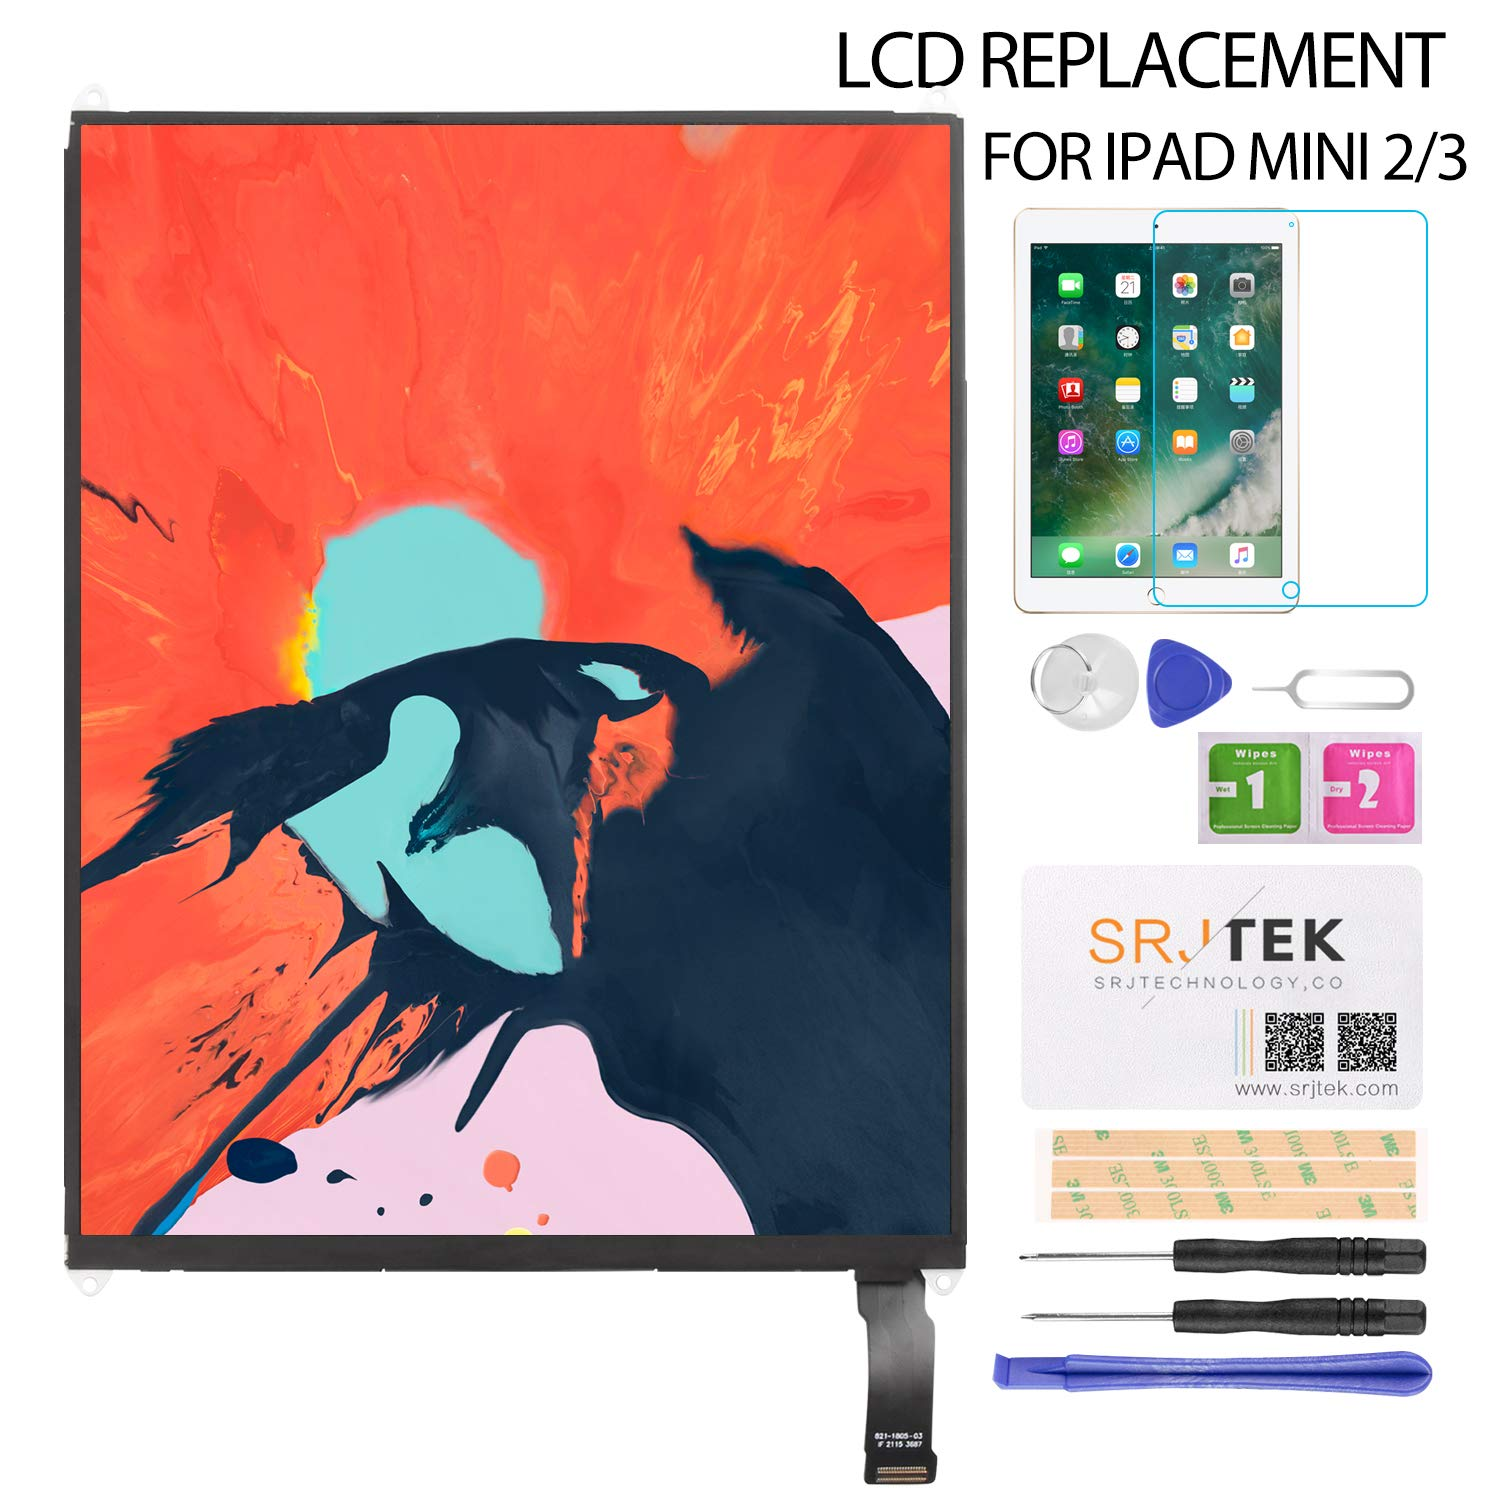 """LCD Display Screen Replacement, for iPad Mini 2 3 (7.9"""") nA1489 A1490 A1491 A1599 A1560 LCD Panel Repair Parts Kit,Include Tempered Glass,6 Month Warranty"""